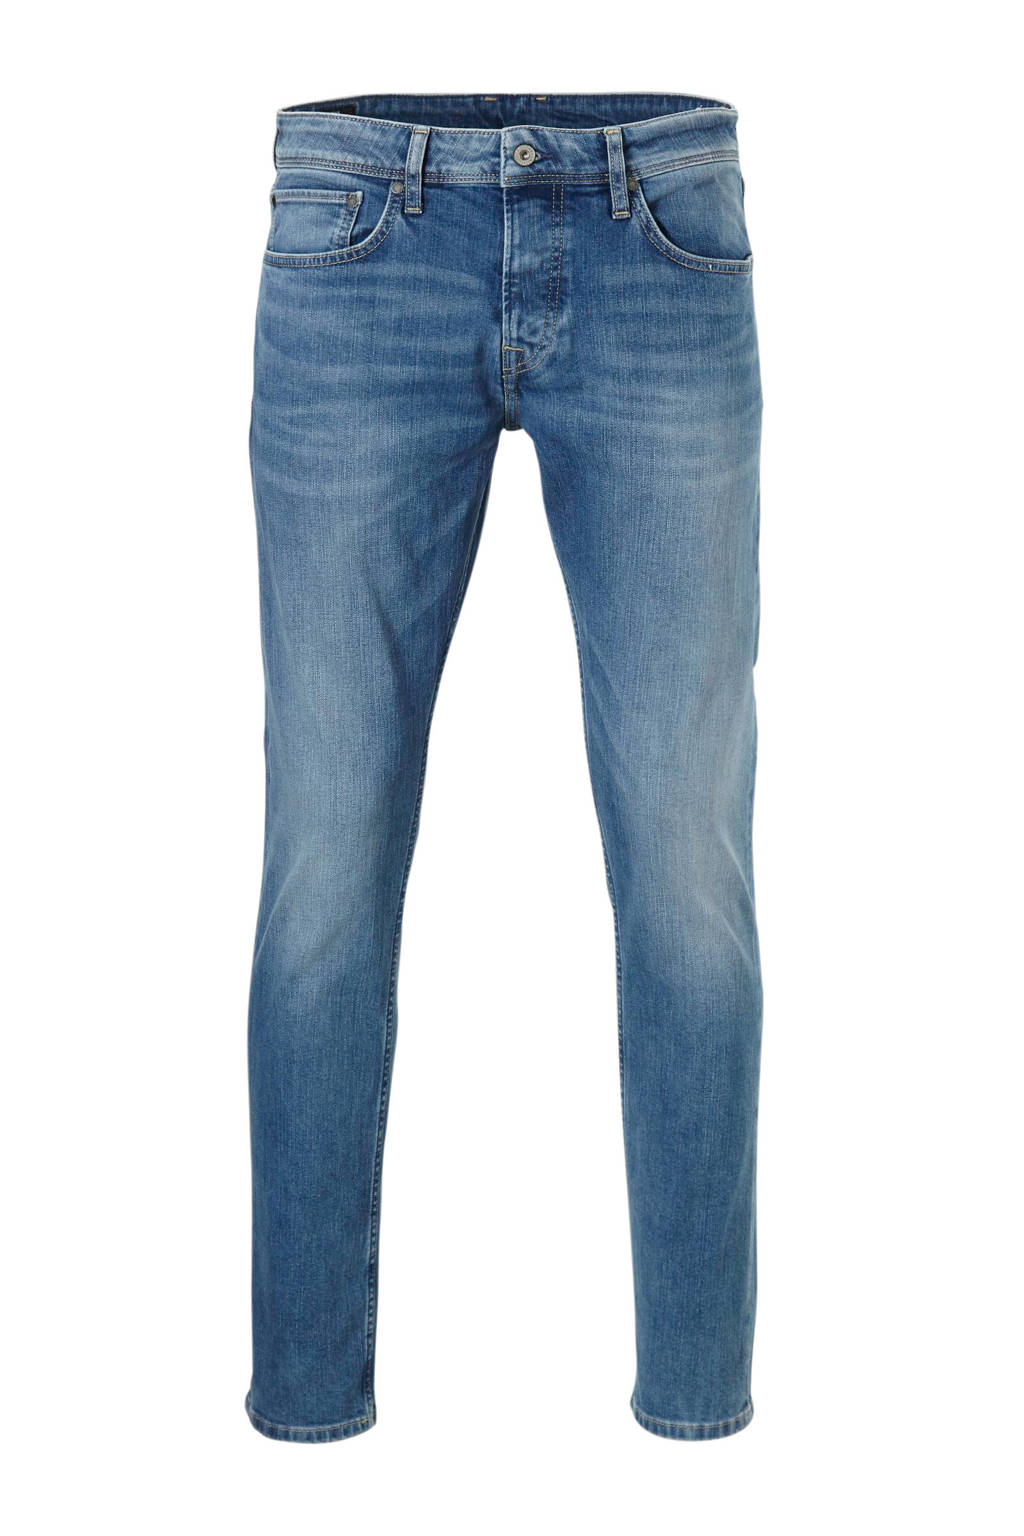 Pepe Jeans straight fit jeans, Light denim